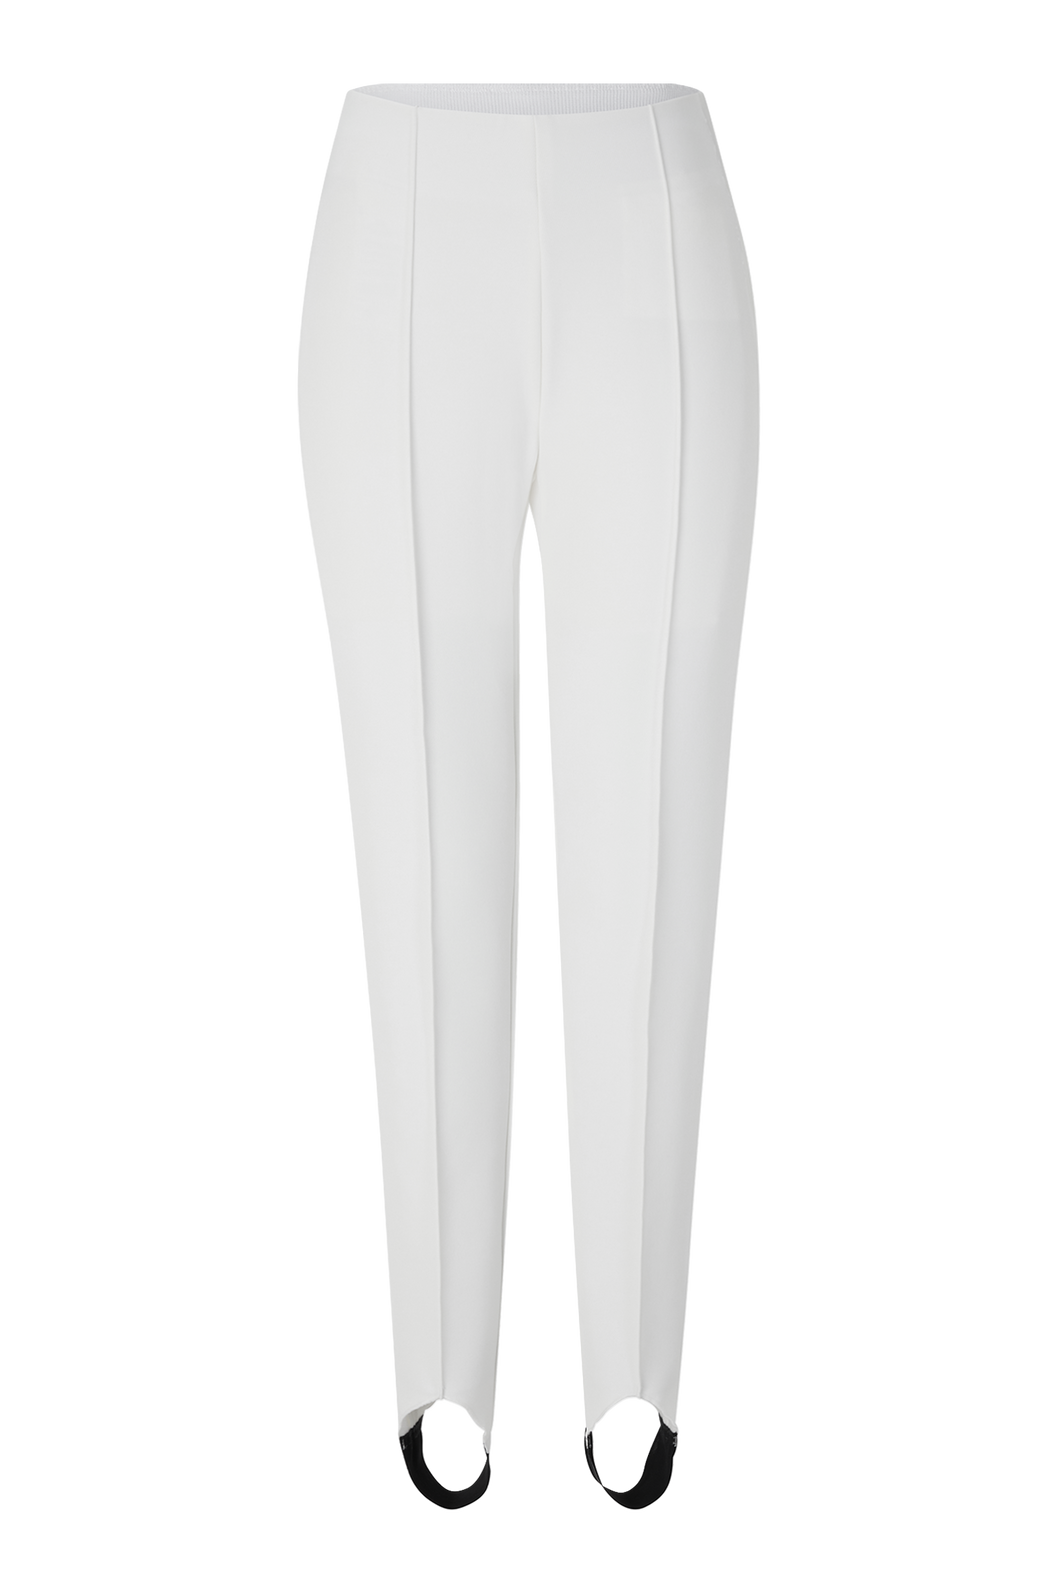 Elaine Schoeller Soft Multi-Stretch Pants - White